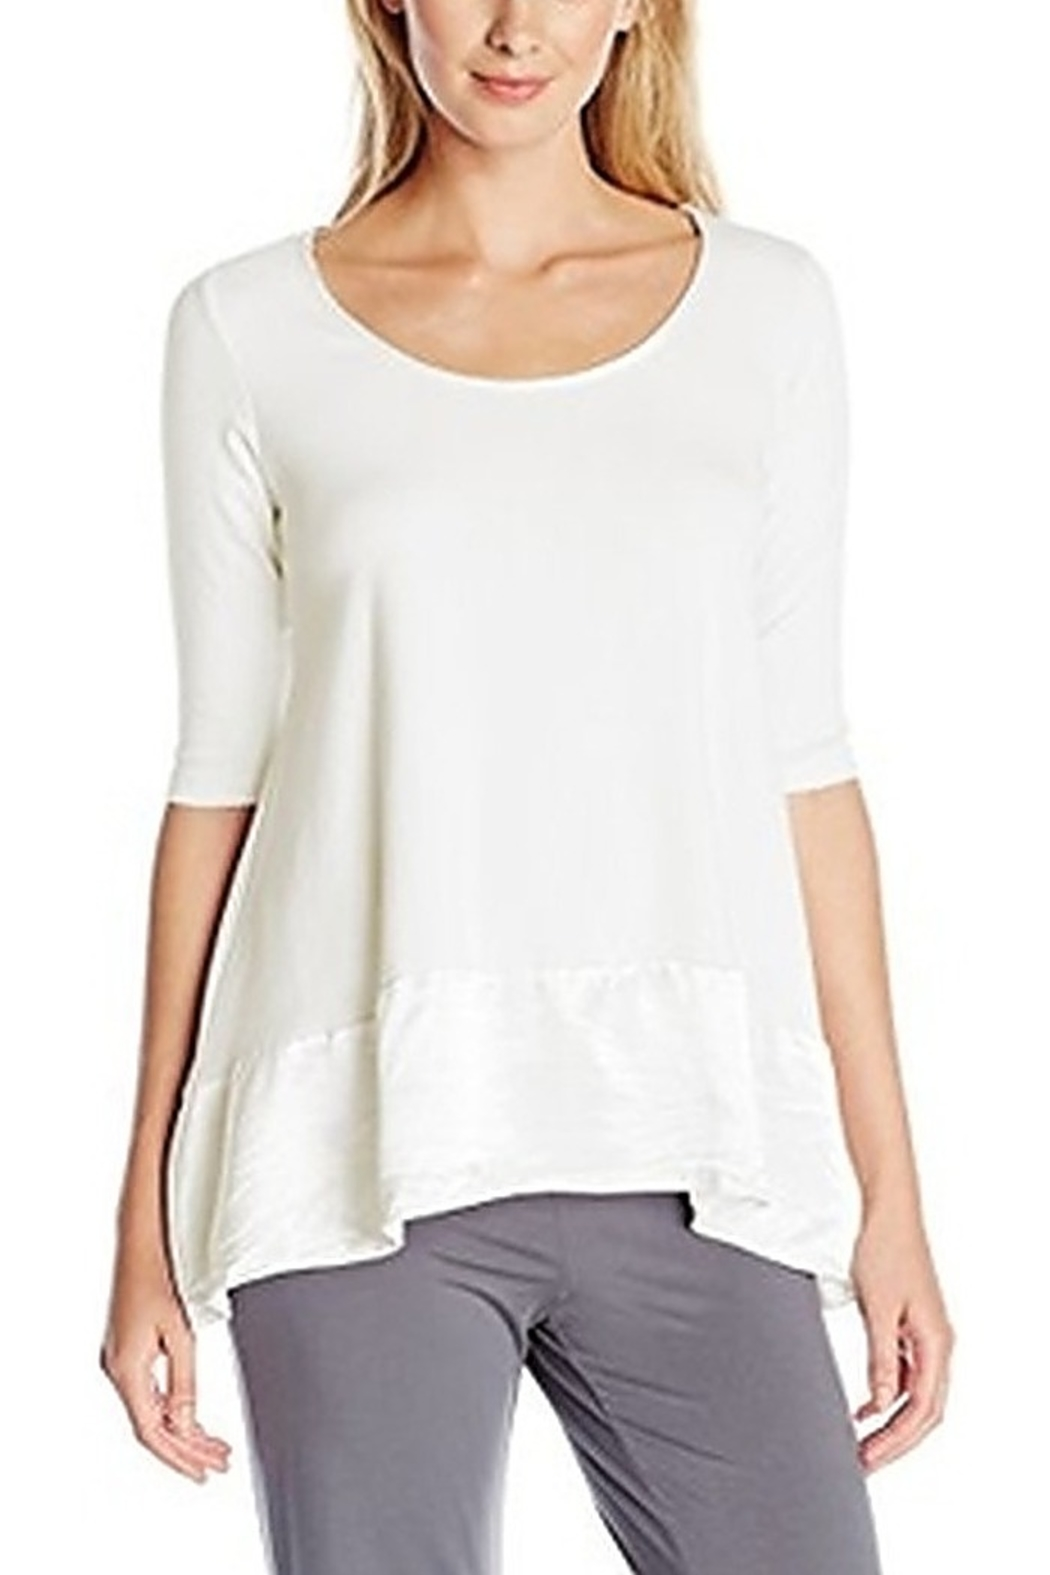 PJHARLOW Rib Knit 3/4 Sleeve Swing Top With Satin Trim - Front Cropped Image